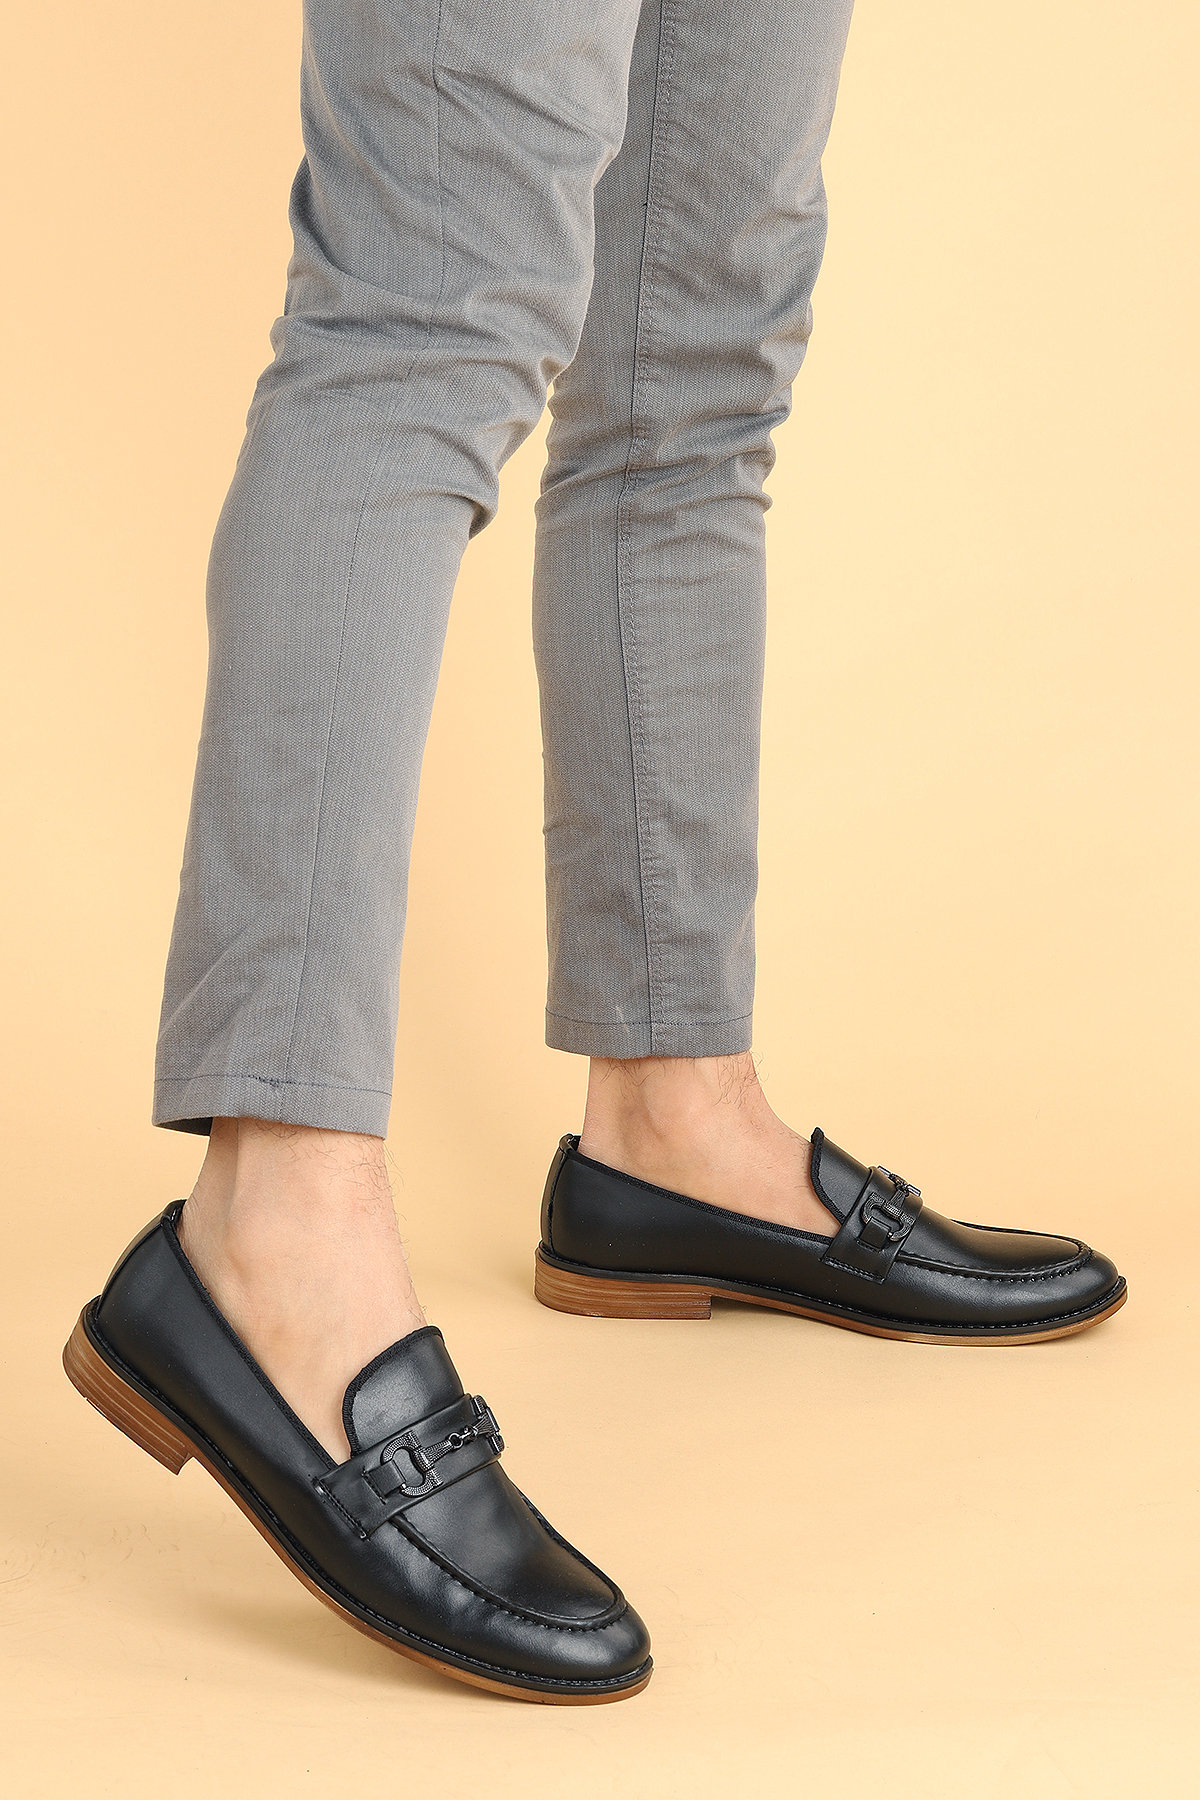 Ayakland 2700 Skin Daily Men 'S Classic Shoes